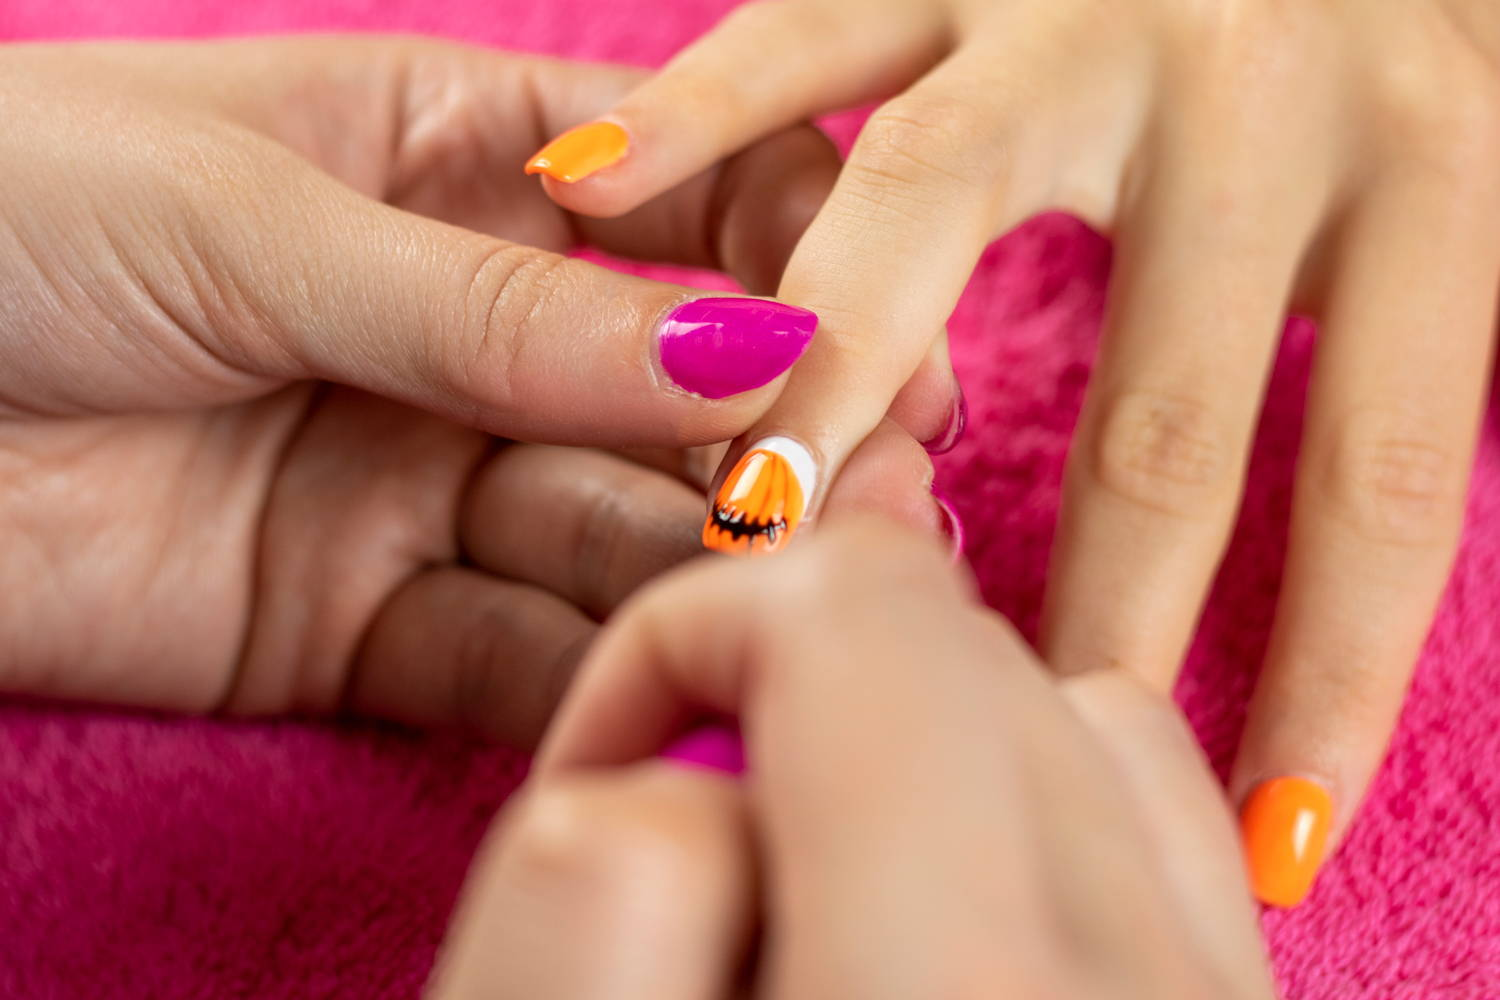 Pumpkin mouth being painted onto nails using ORLY Liquid Vinyl